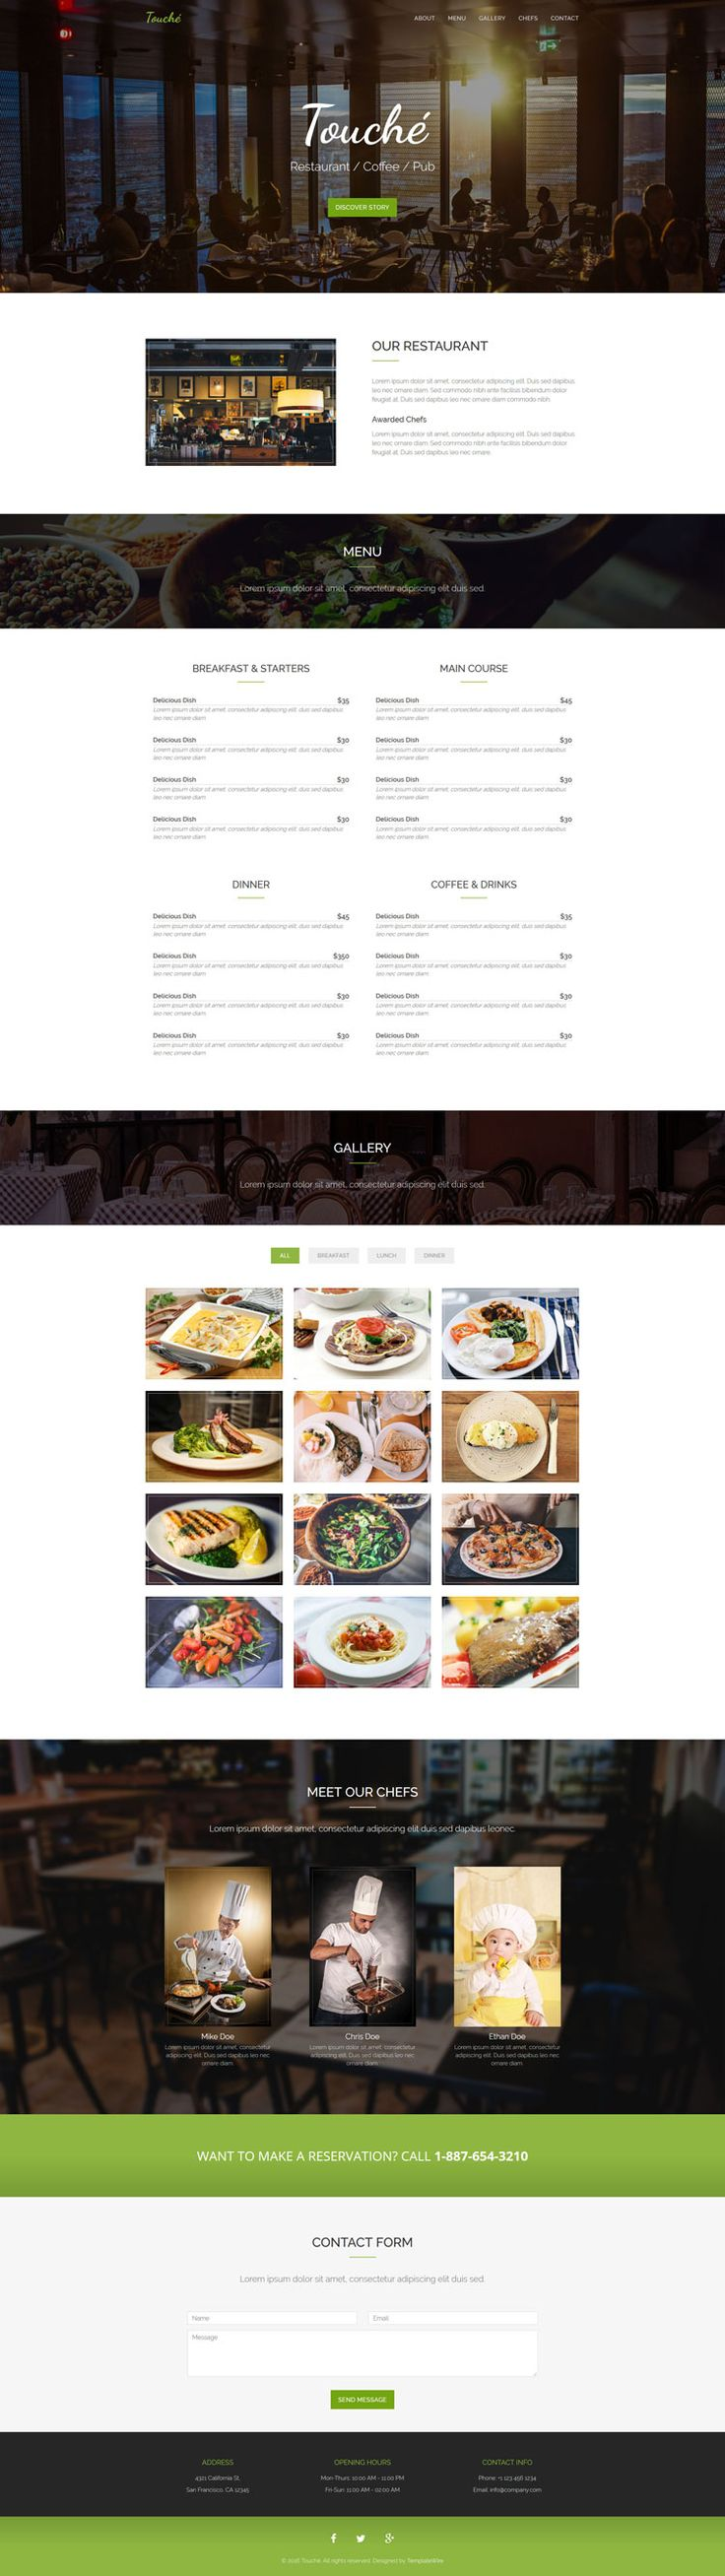 Touche - Restaurant Website Template - Free Download